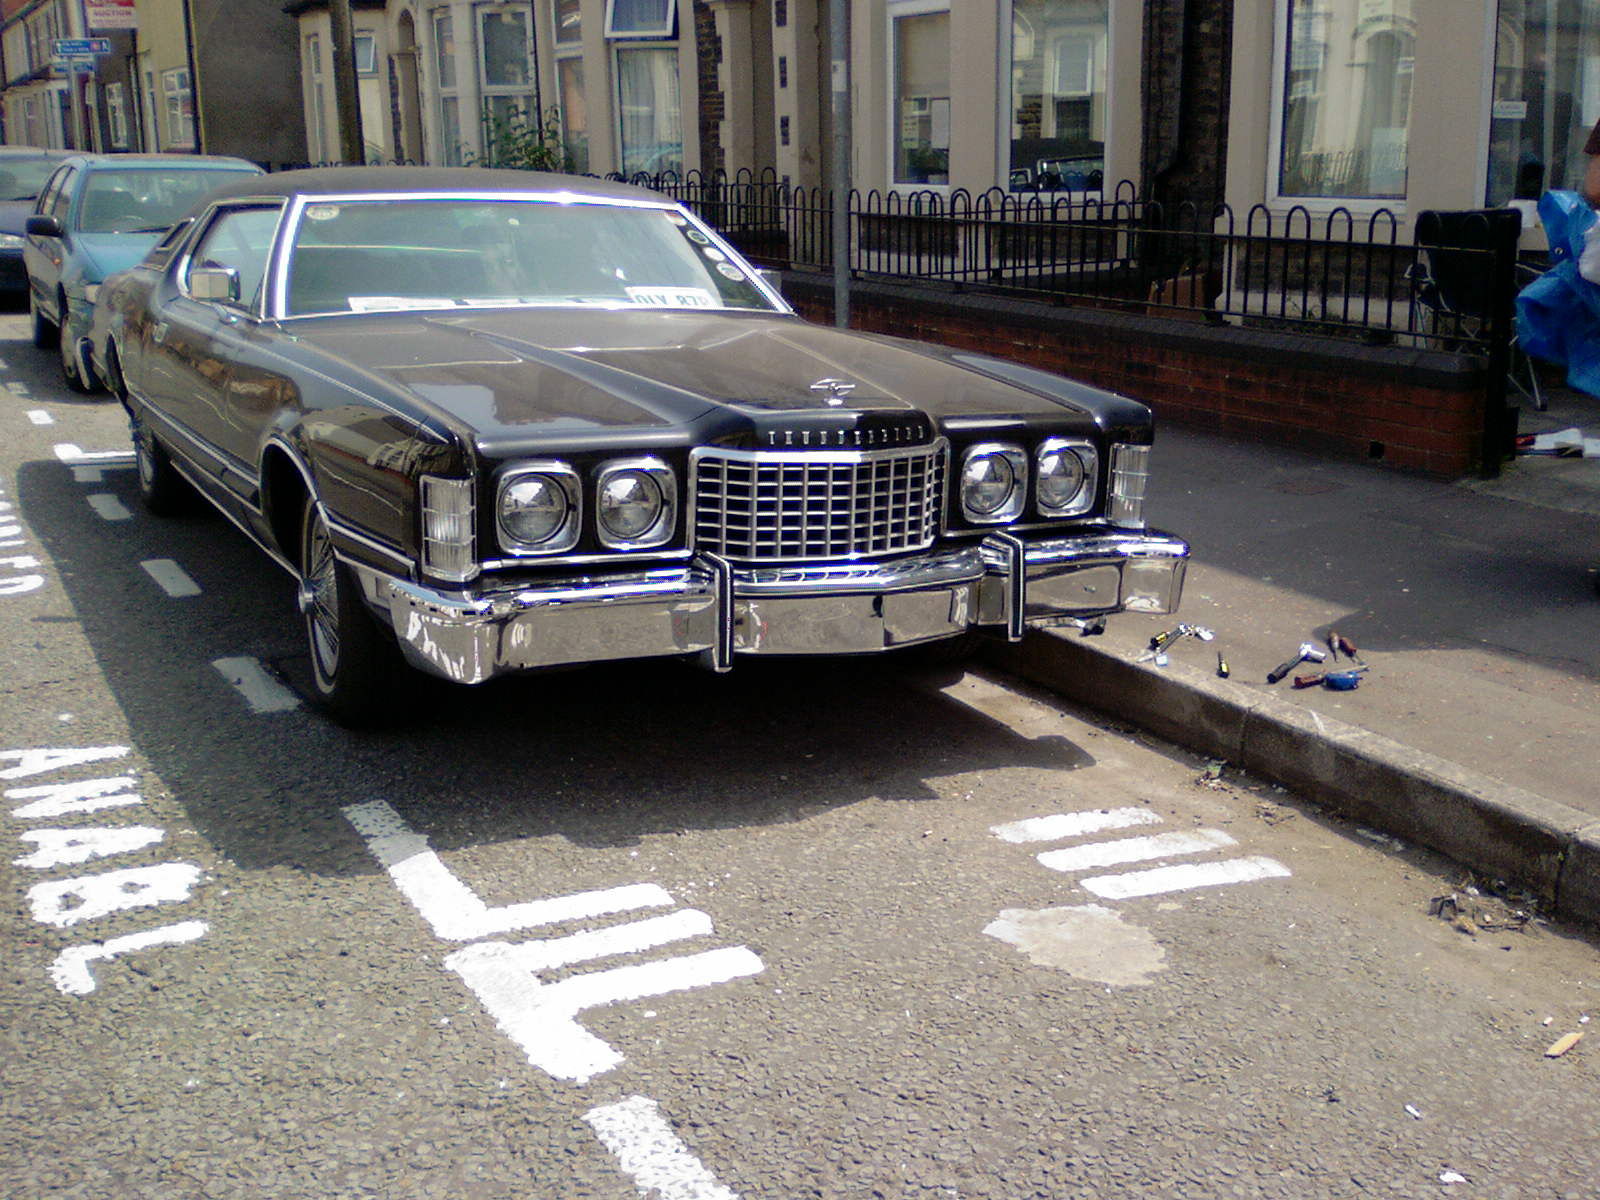 JT_Birds 76` Big Bird the day Repaired and Rechromed bumper was fitted / photo 3